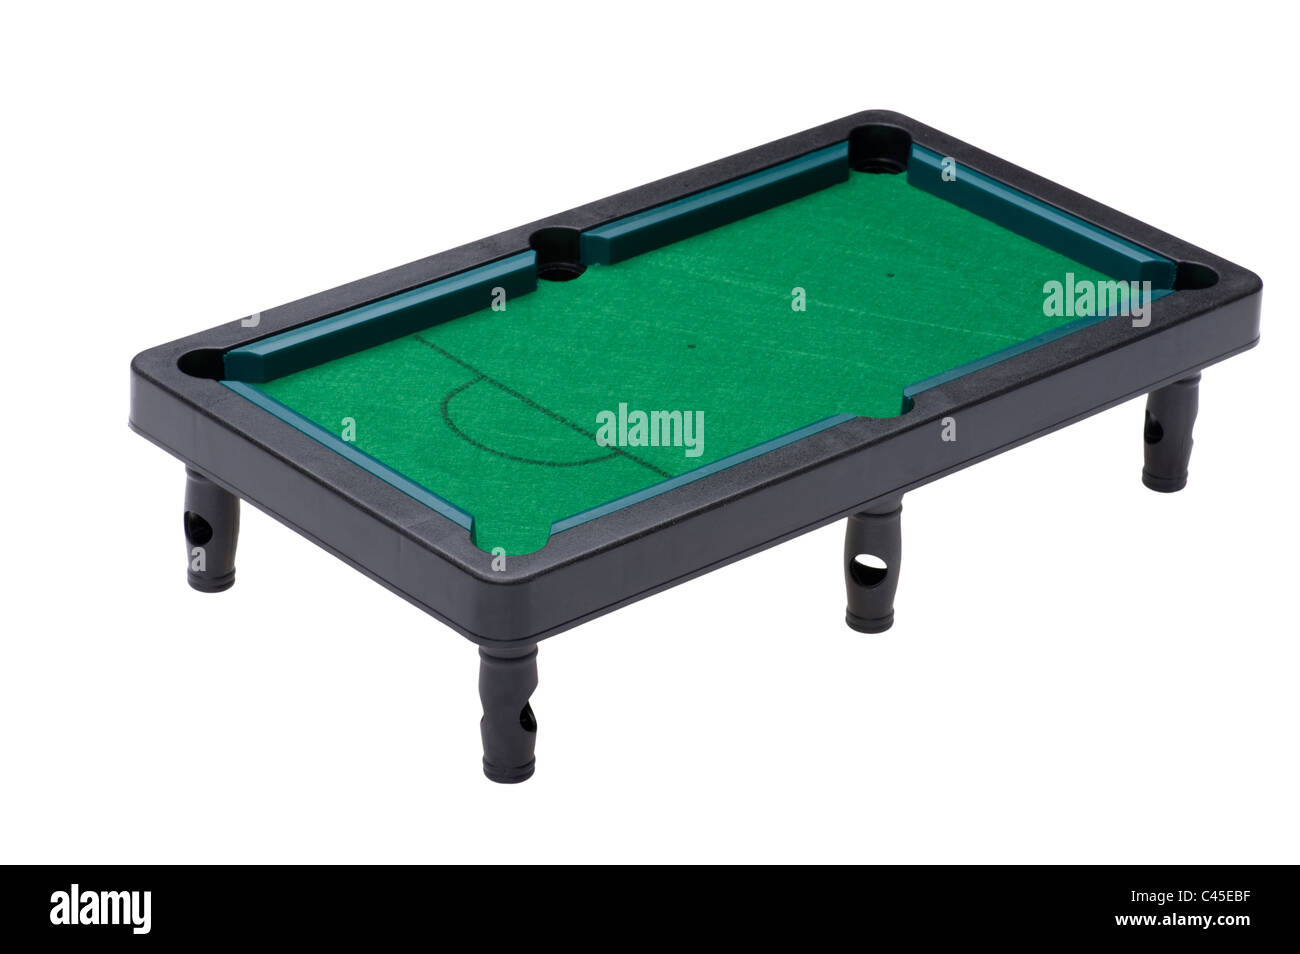 Billard Tisch Weiss Pool Table Set Up Game Stockfotos And Pool Table Set Up Game